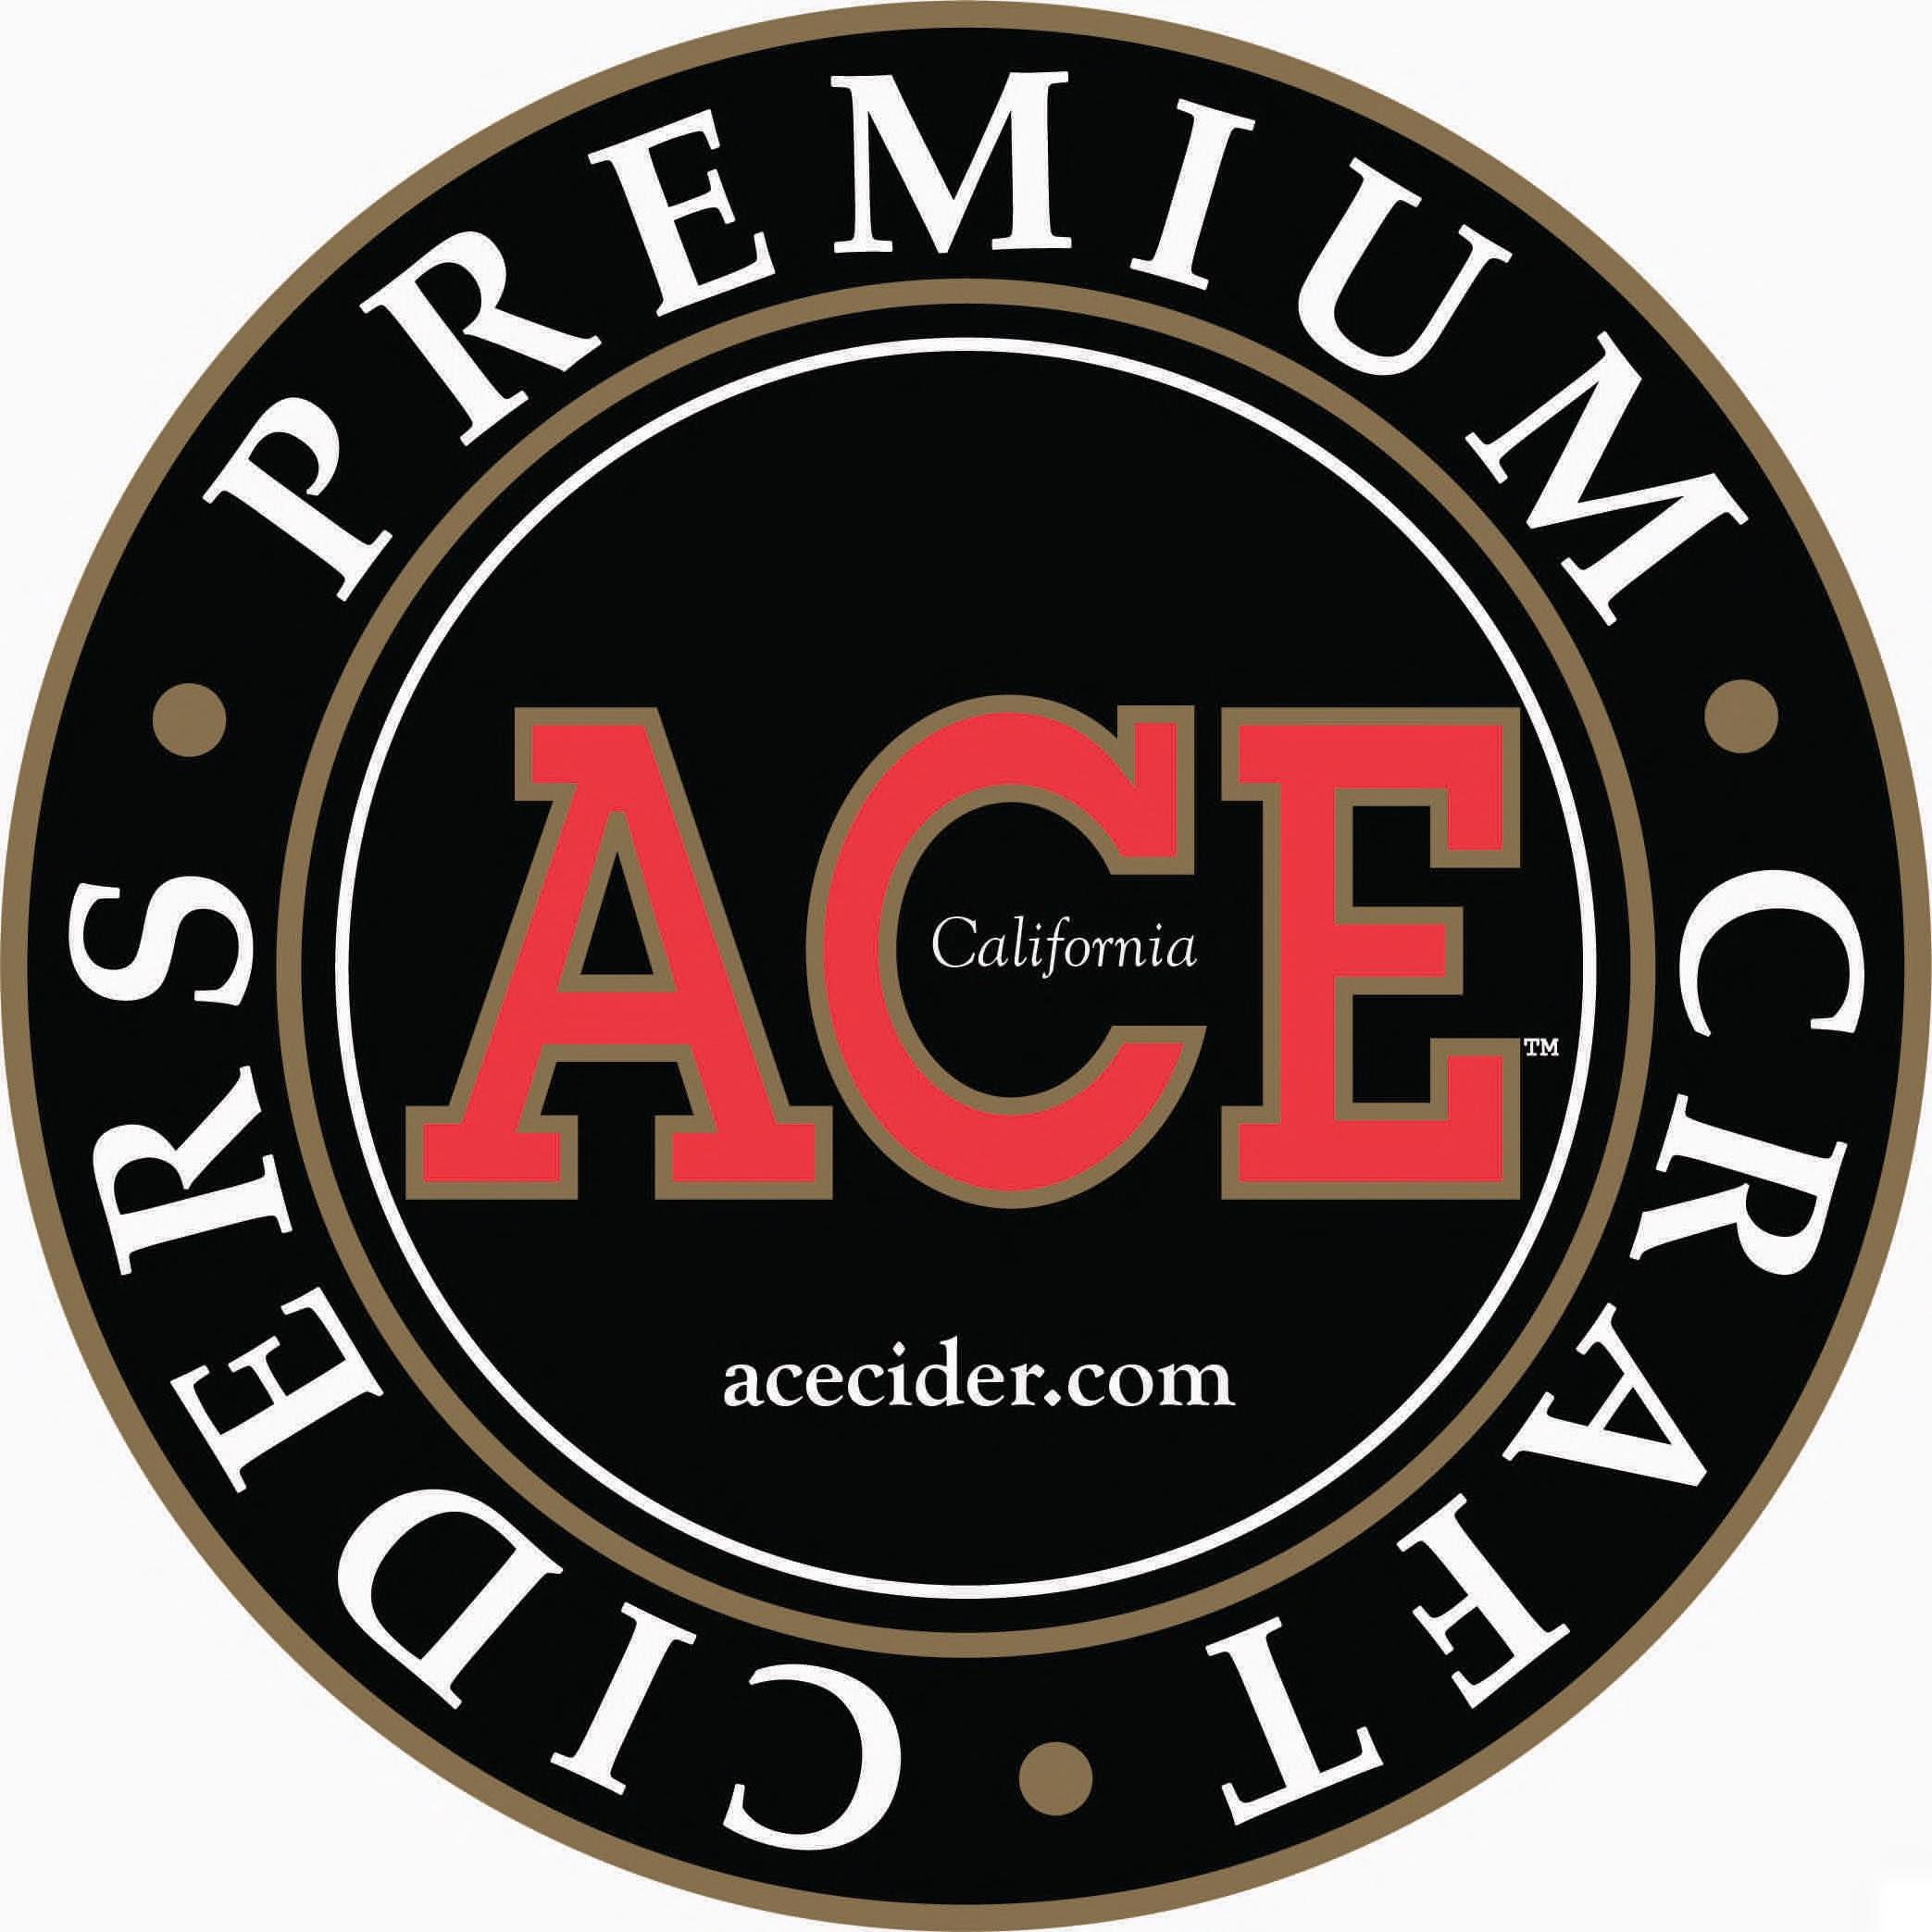 Ace logo pcc outer circle   small